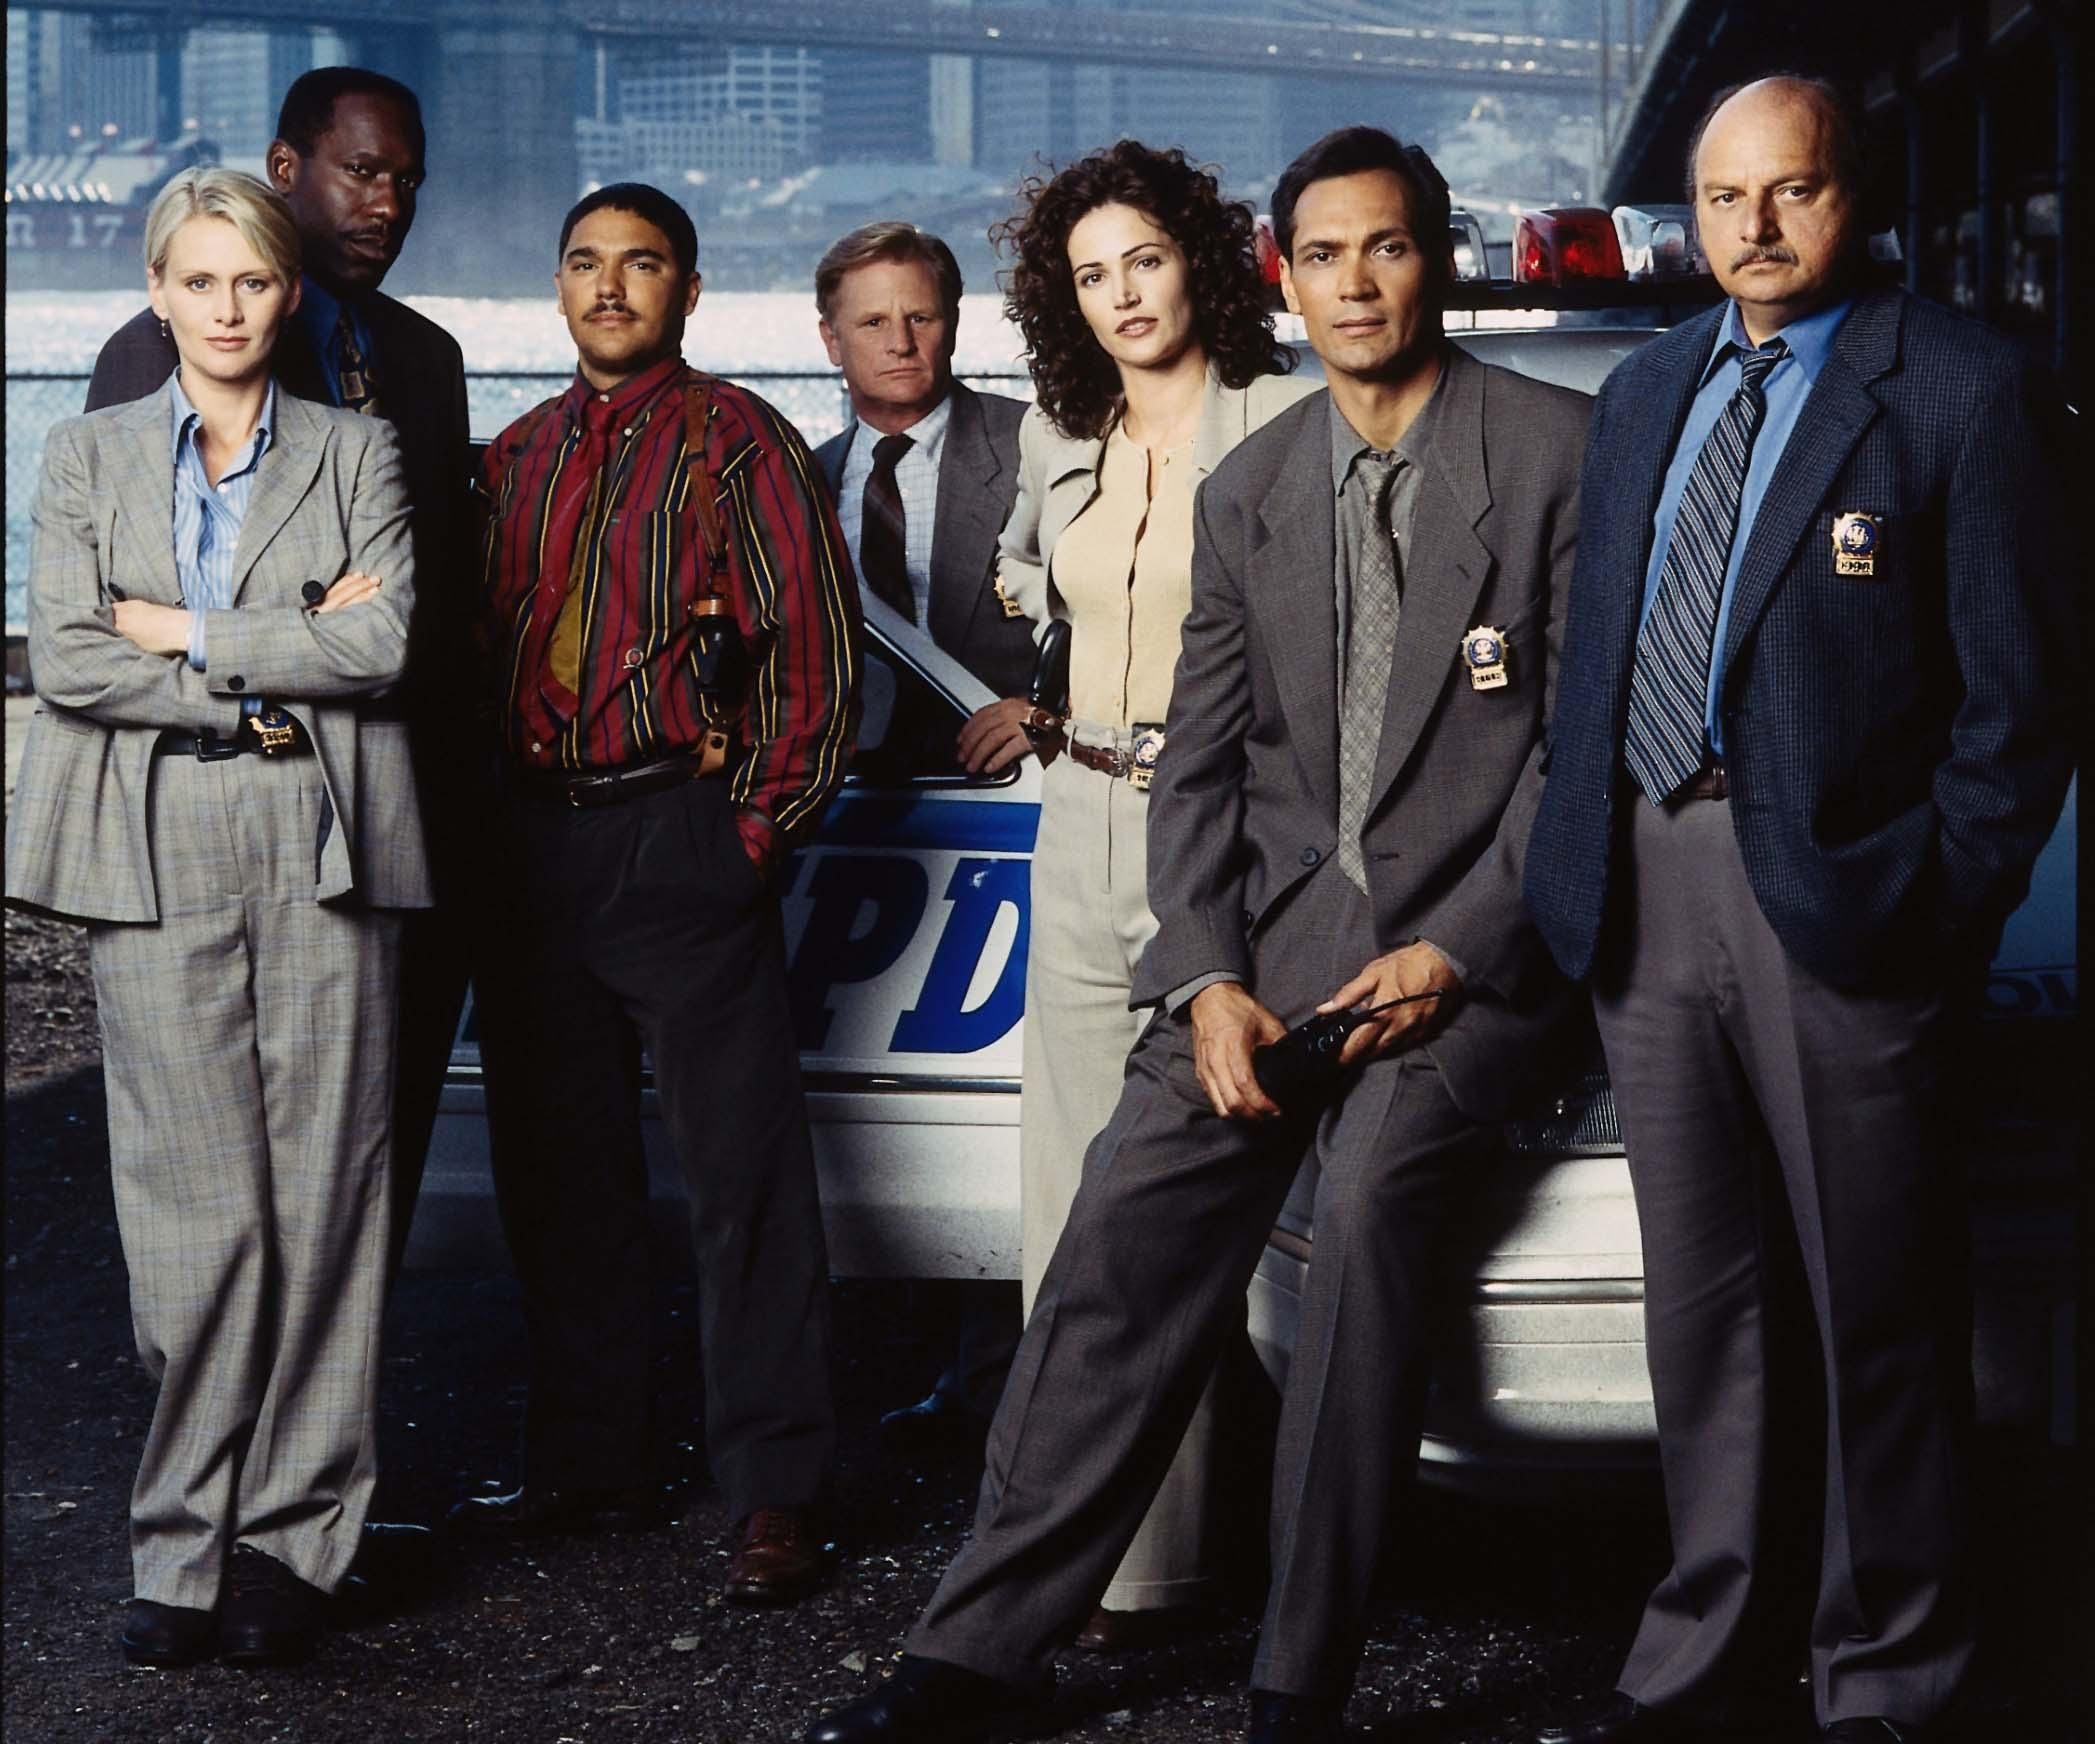 Cast of NYPD Blue